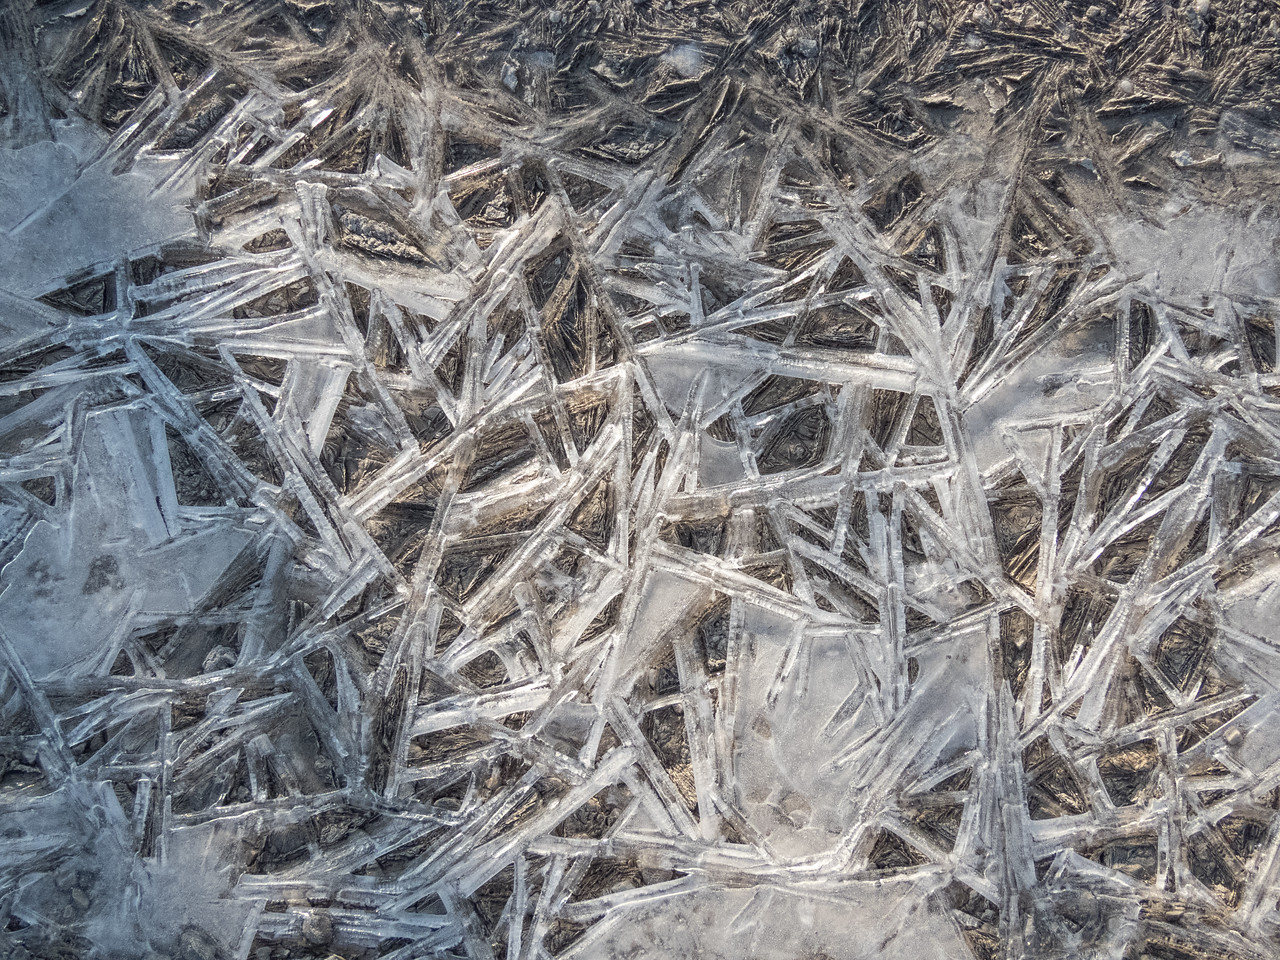 2-04-2017.  Weekly Walkers at Columbia Station.  For some reason, that park always has the best ice formations.  These were crystallizations on the paths.  Lots of them.